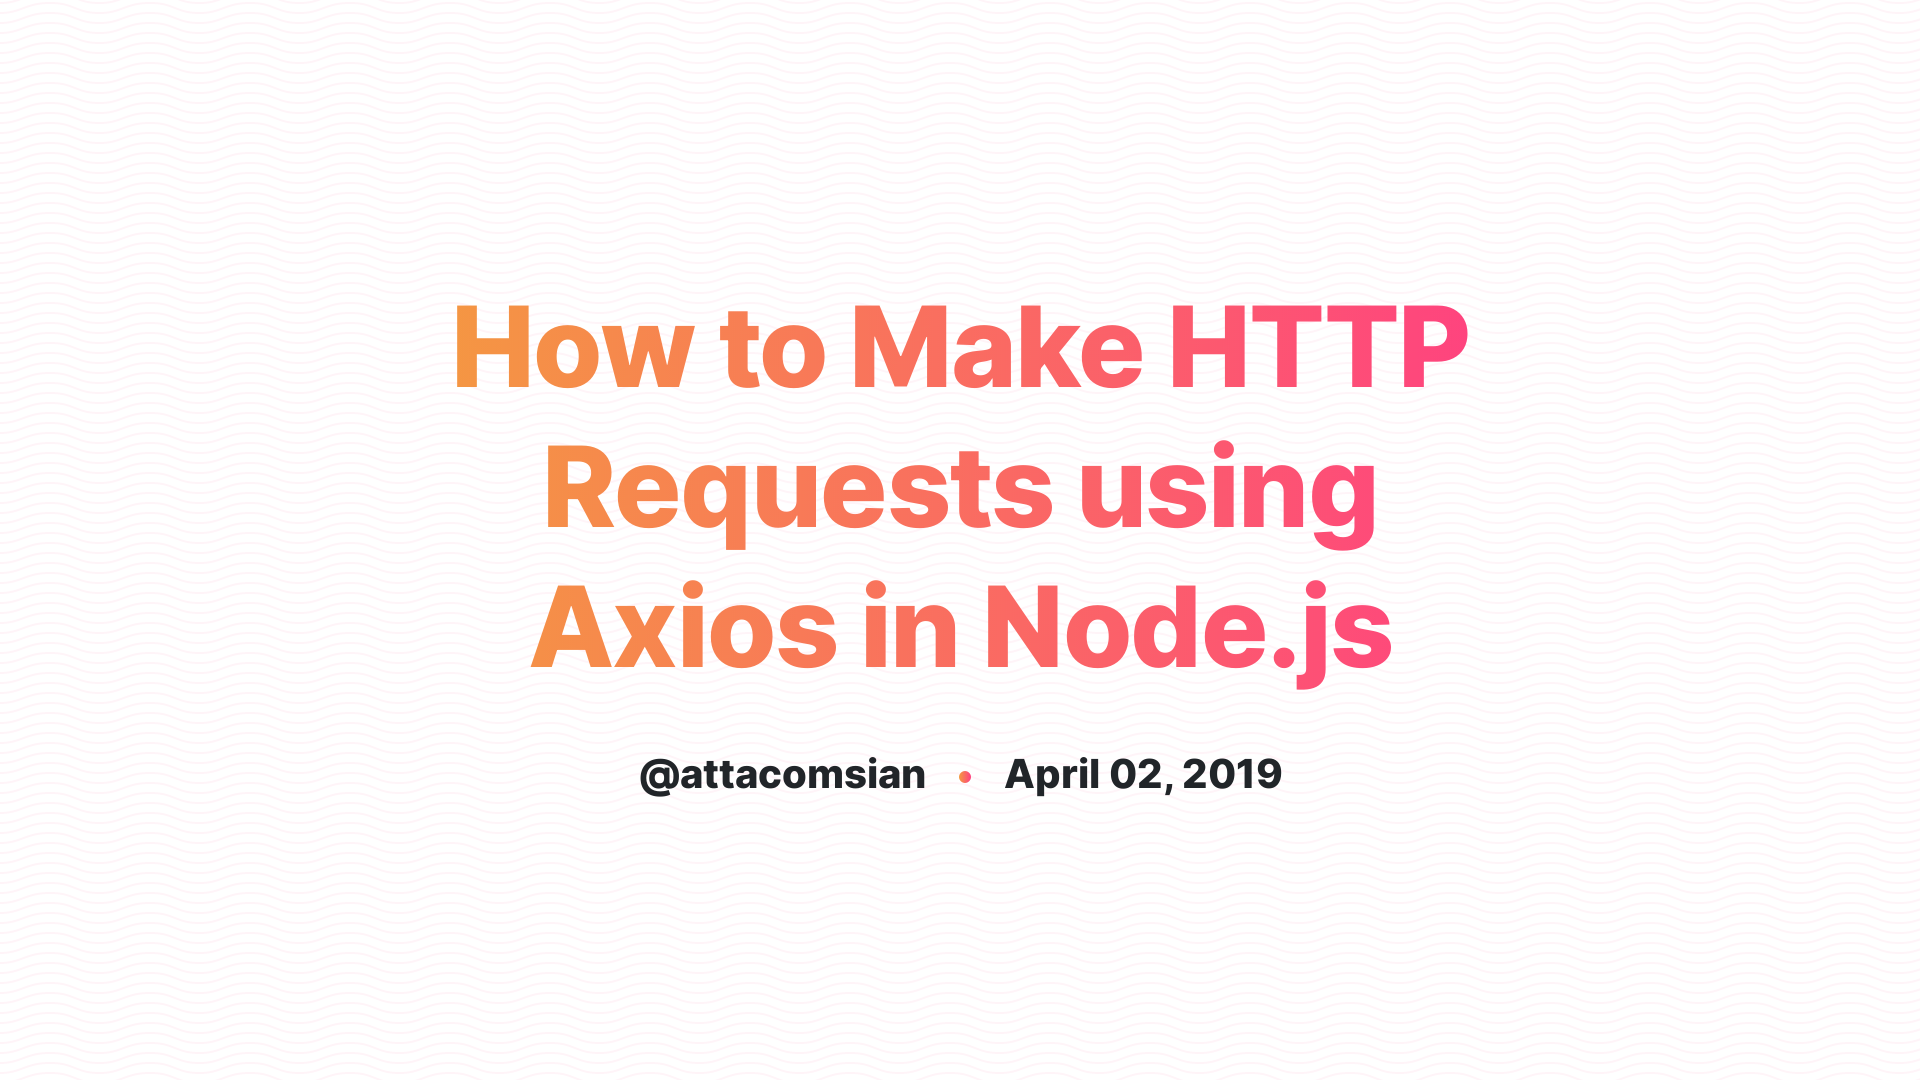 Making HTTP Requests using Axios in Node js